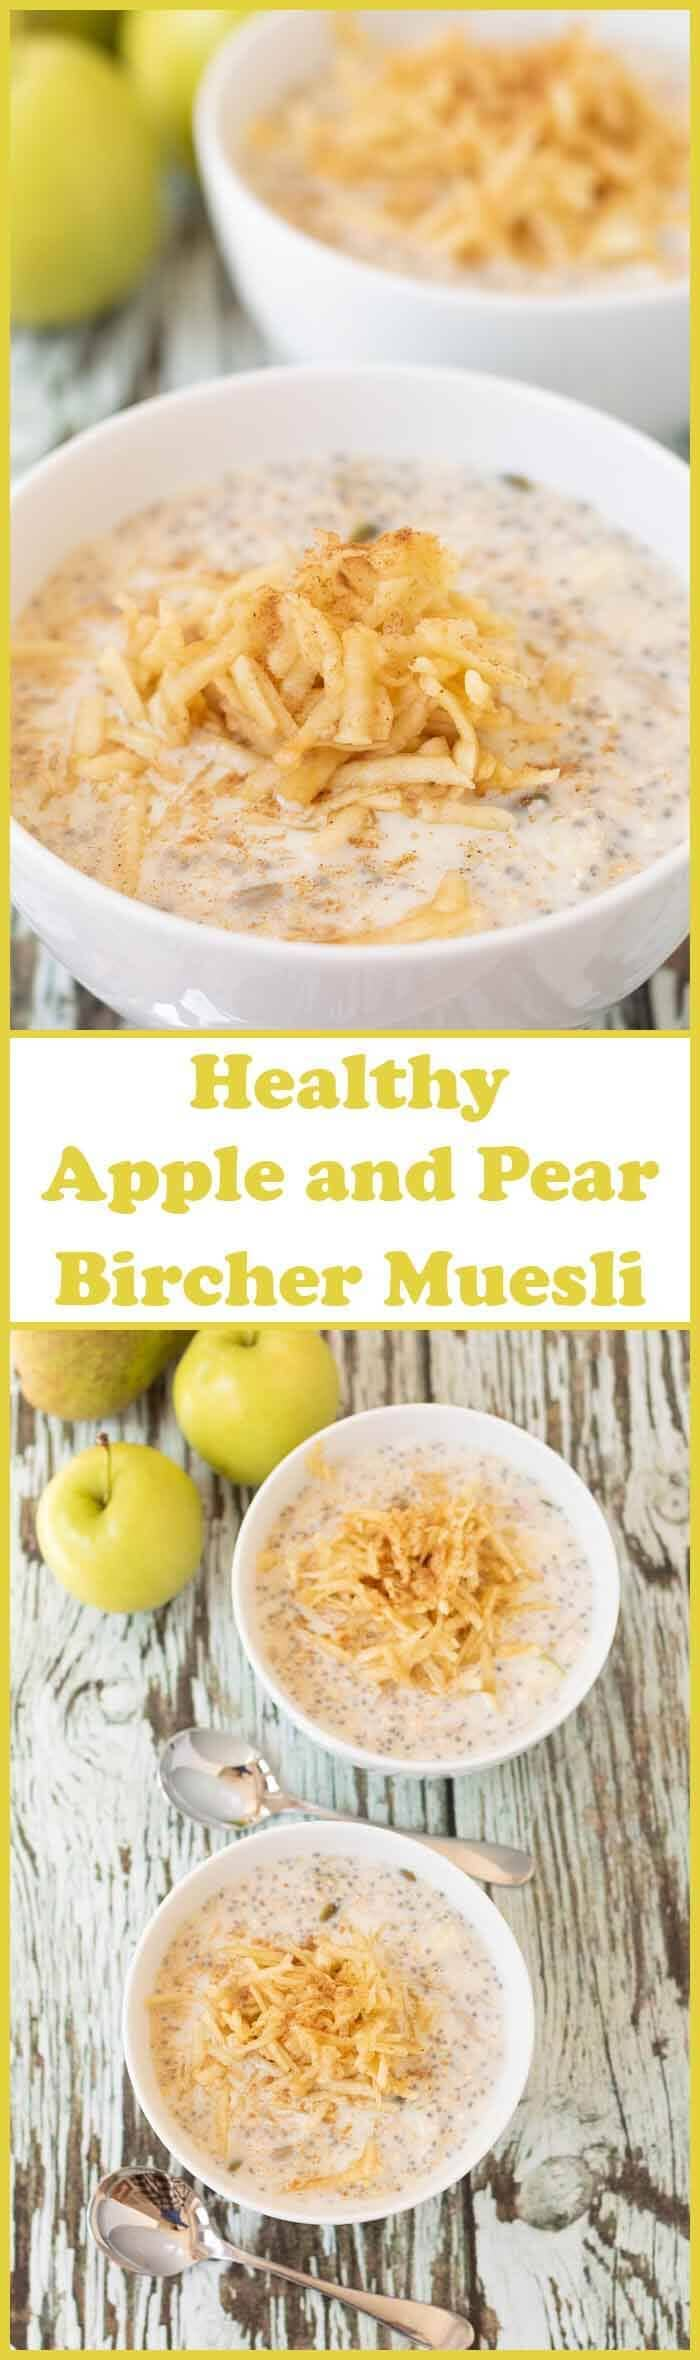 Healthy apple and pear bircher muesli is a delicious easy to make ahead breakfast. It takes just 5 minutes to prepare the evening before. Then soak the oats overnight in the fridge and add your pear and apple in the morning!